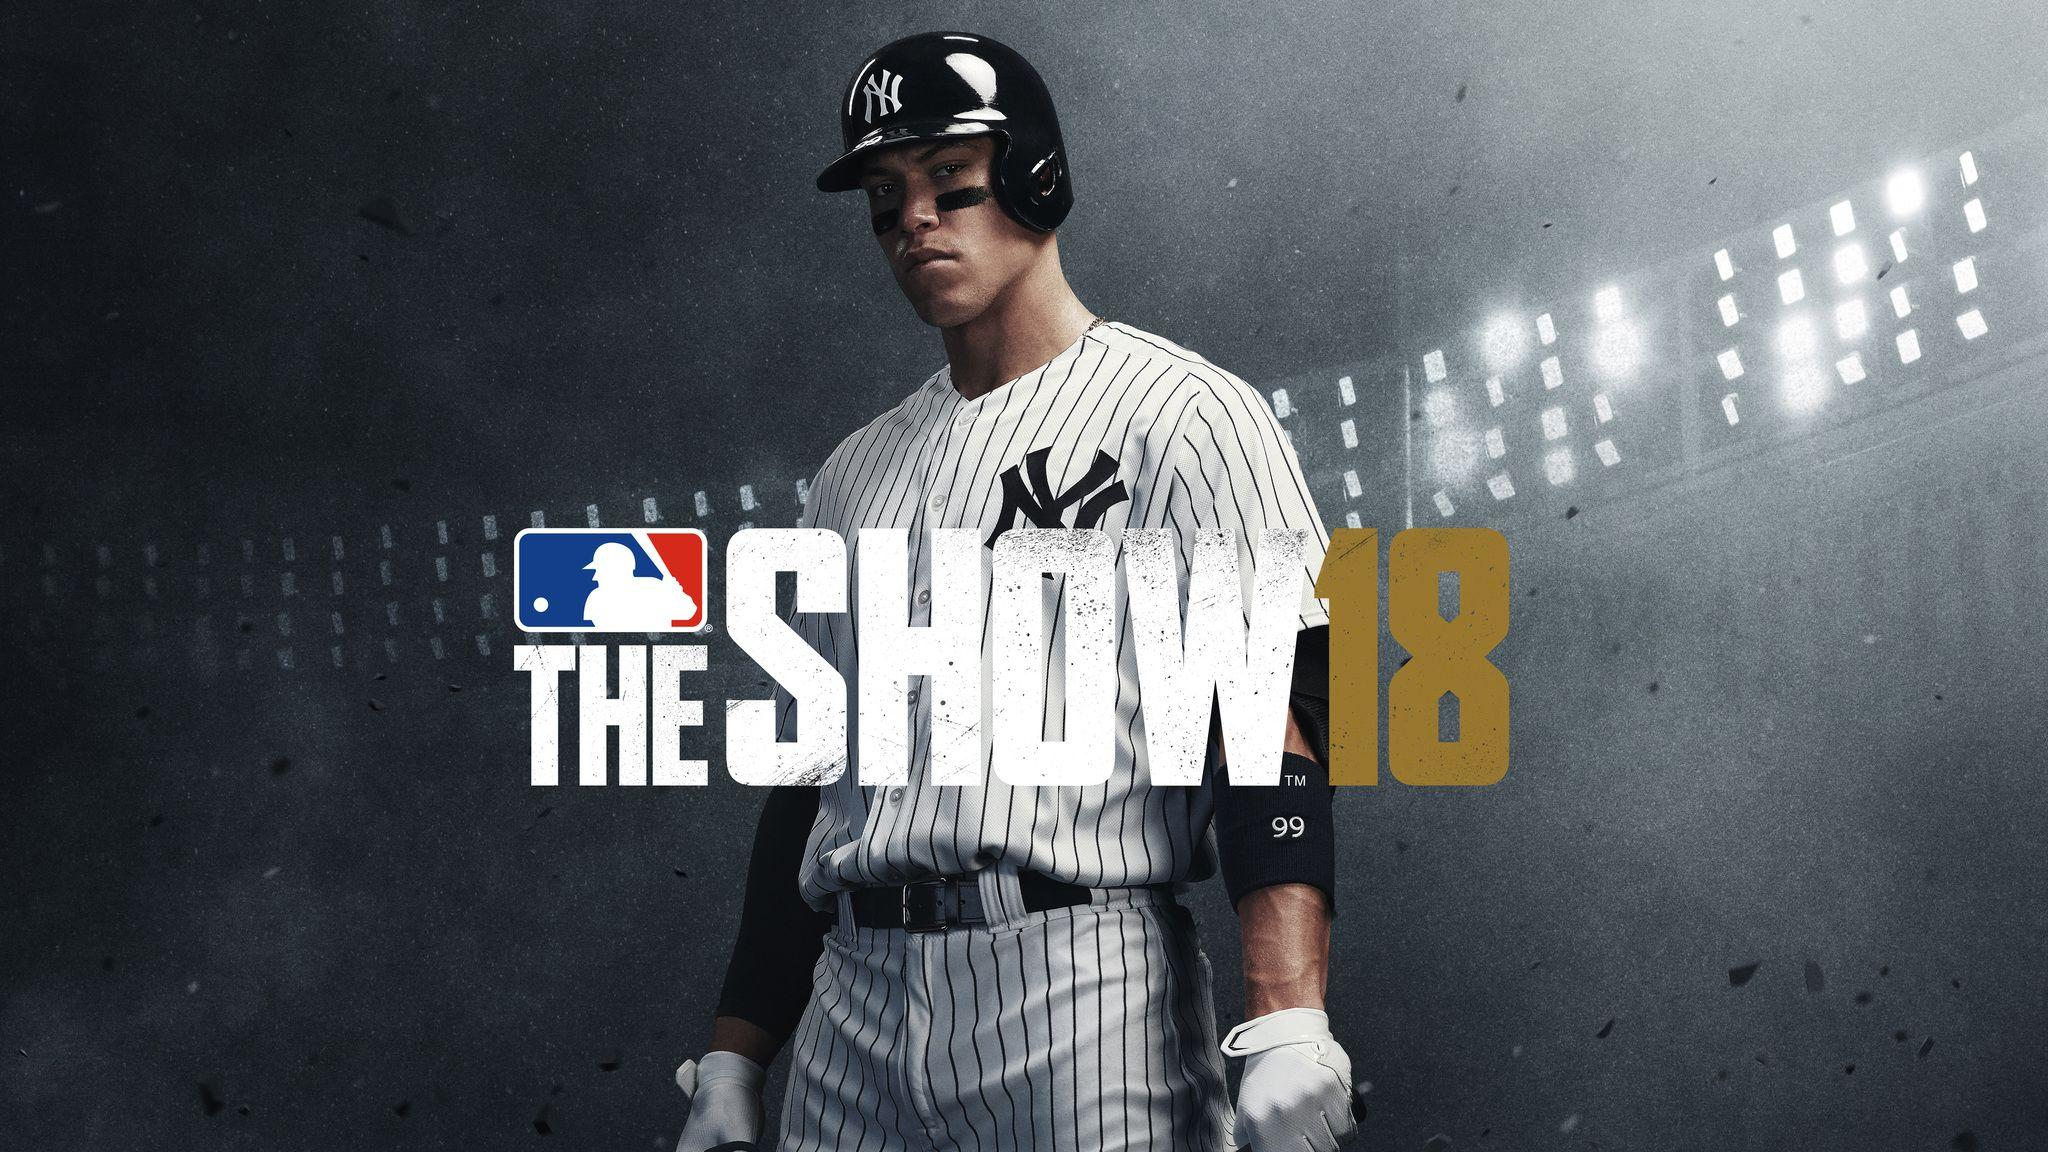 2048x1152 Mlb The Show 18 2048x1152 Resolution HD 4k Wallpapers